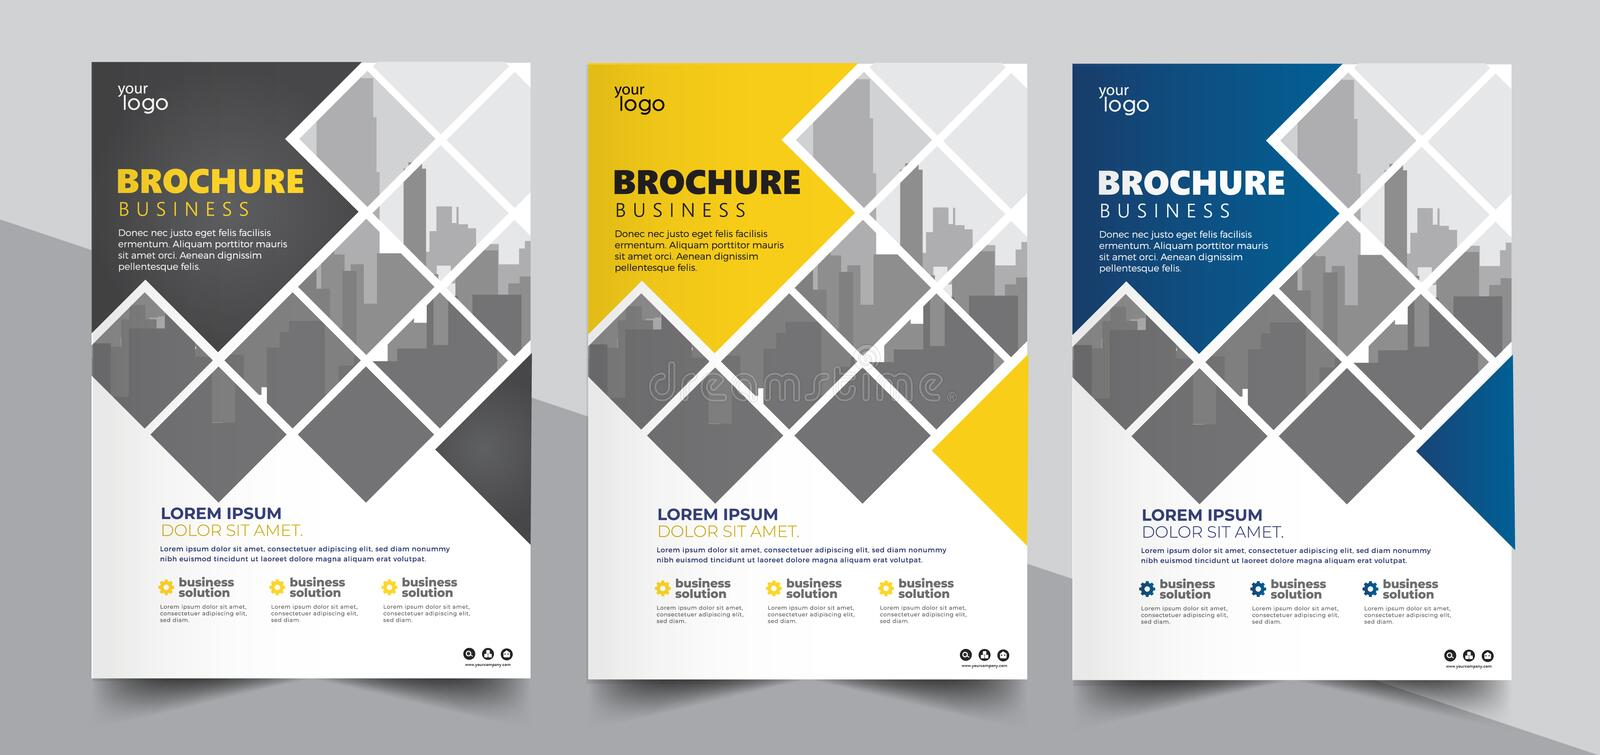 Brochure design, cover modern layout, annual report, poster, flyer in A4 with colorful triangles stock illustration